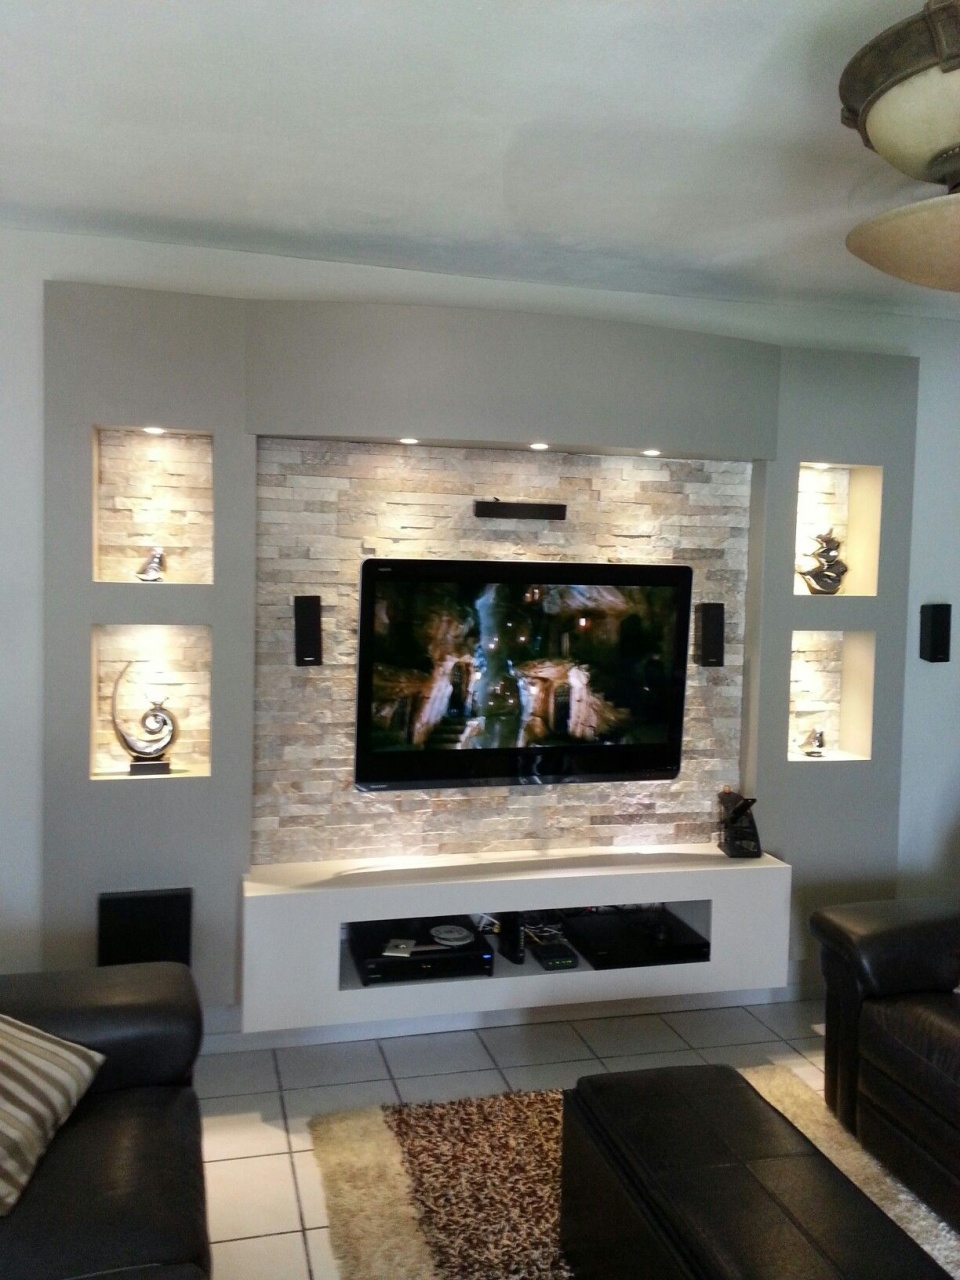 Fireplace Wall Unit Elegant Tv Wall Unit with Fireplace Innovaci³n Tv Unit Home Decor